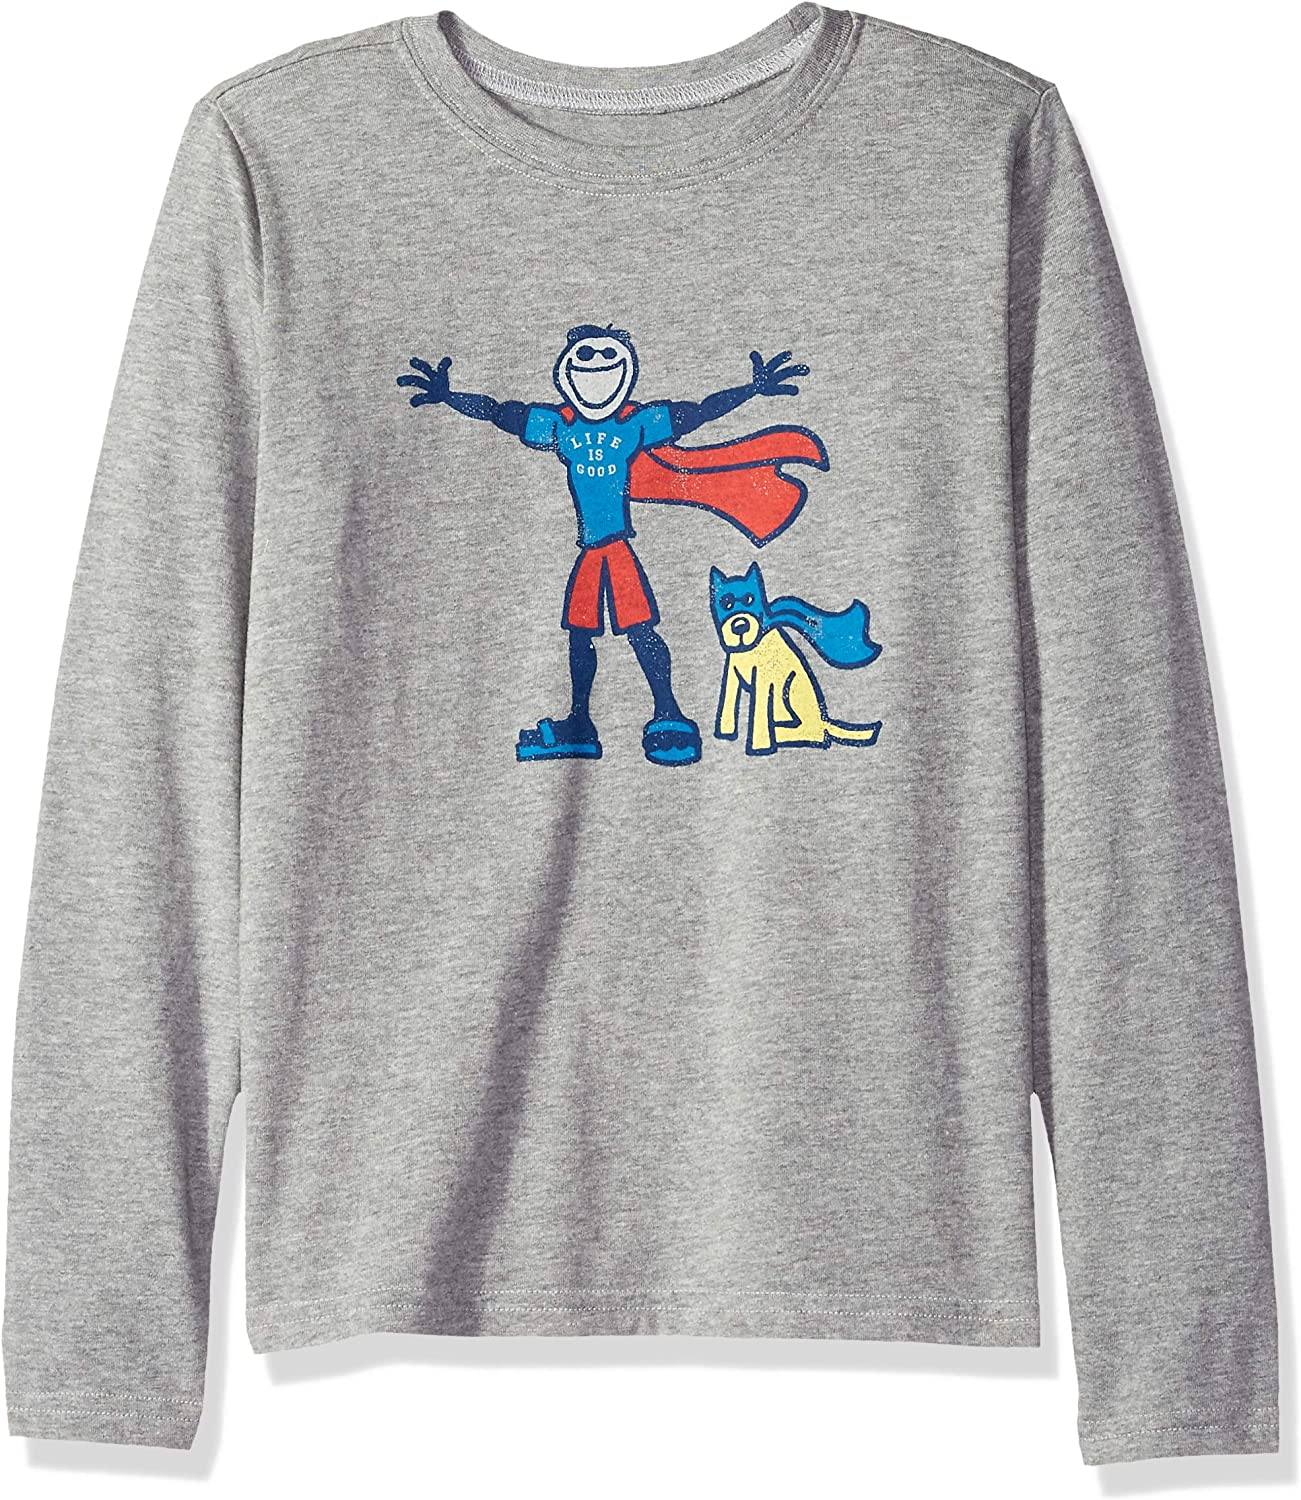 Life is Good Boys Crusher Longsleeve Tee Superhero Jake & Rocket